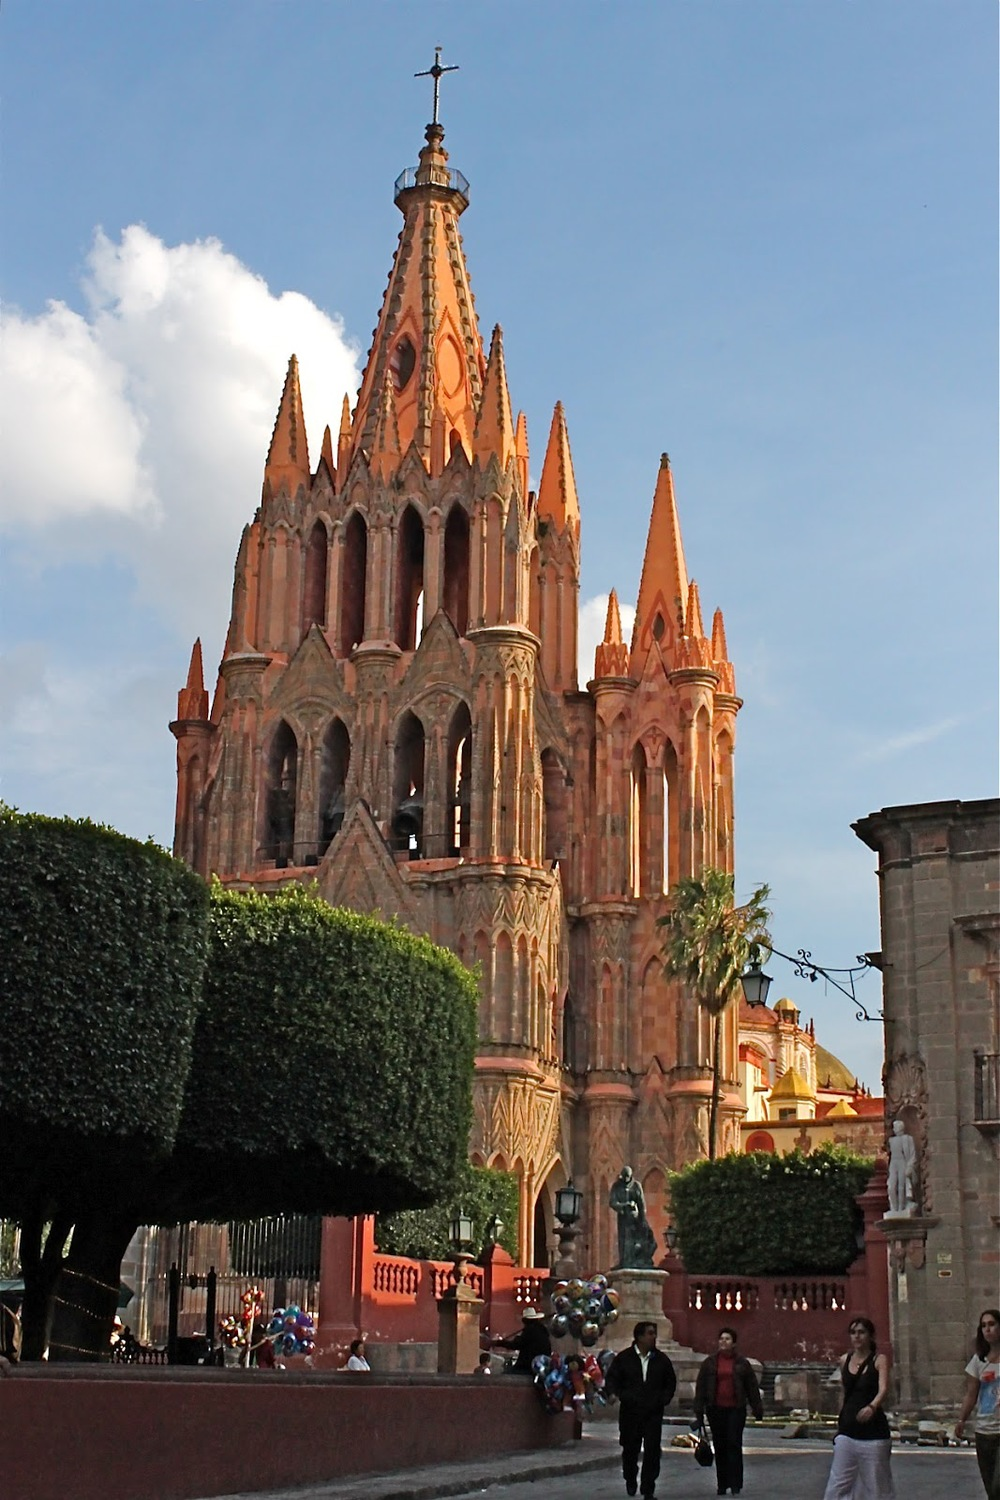 The magnificent Parroquia of San Miguel Archangel